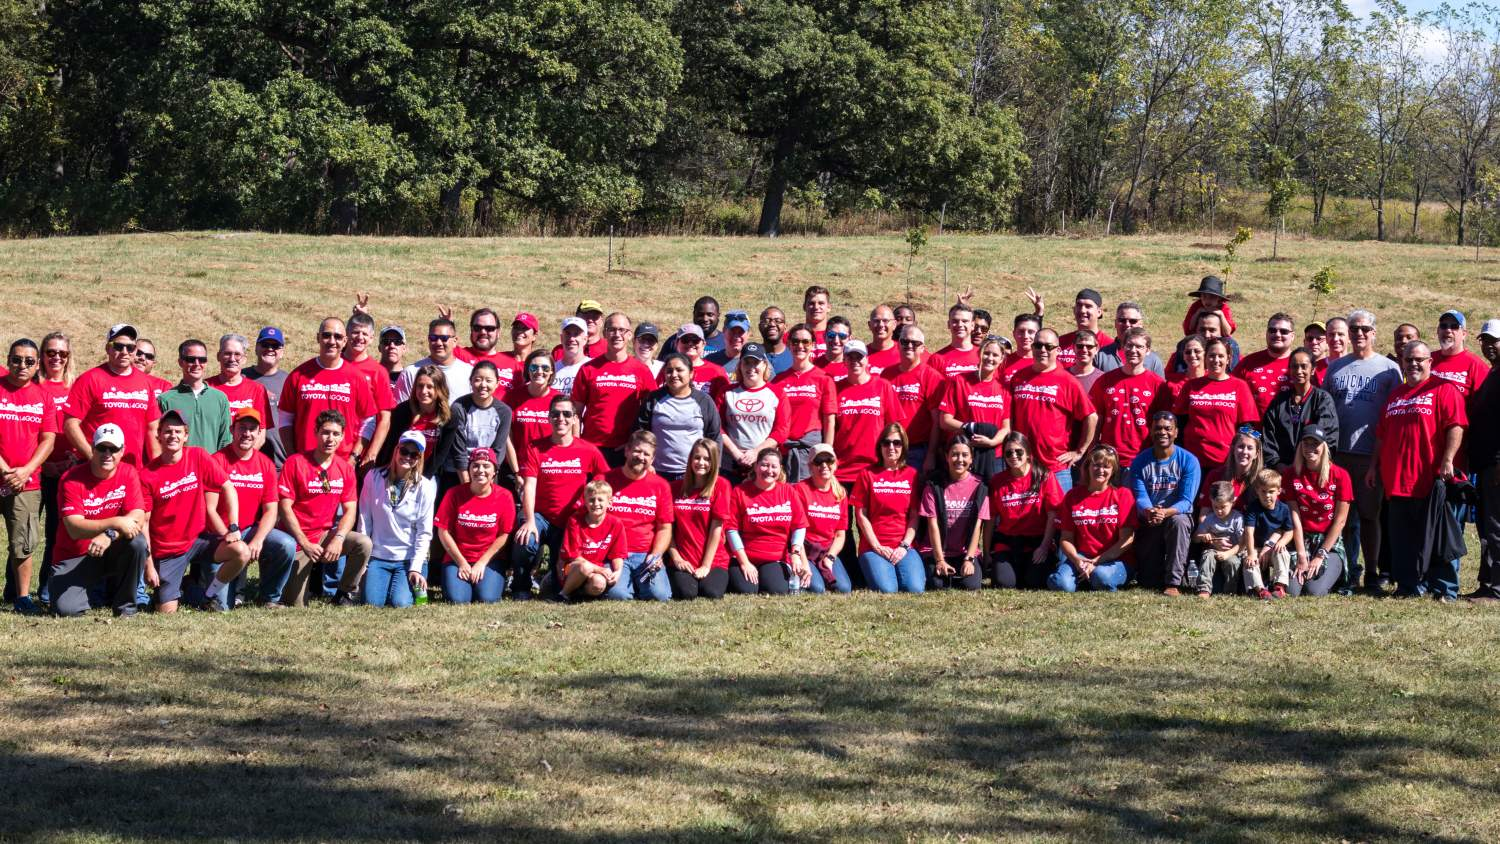 Group photo of volunteers for NPLD at LeRoy Oakes, St. Charles, IL